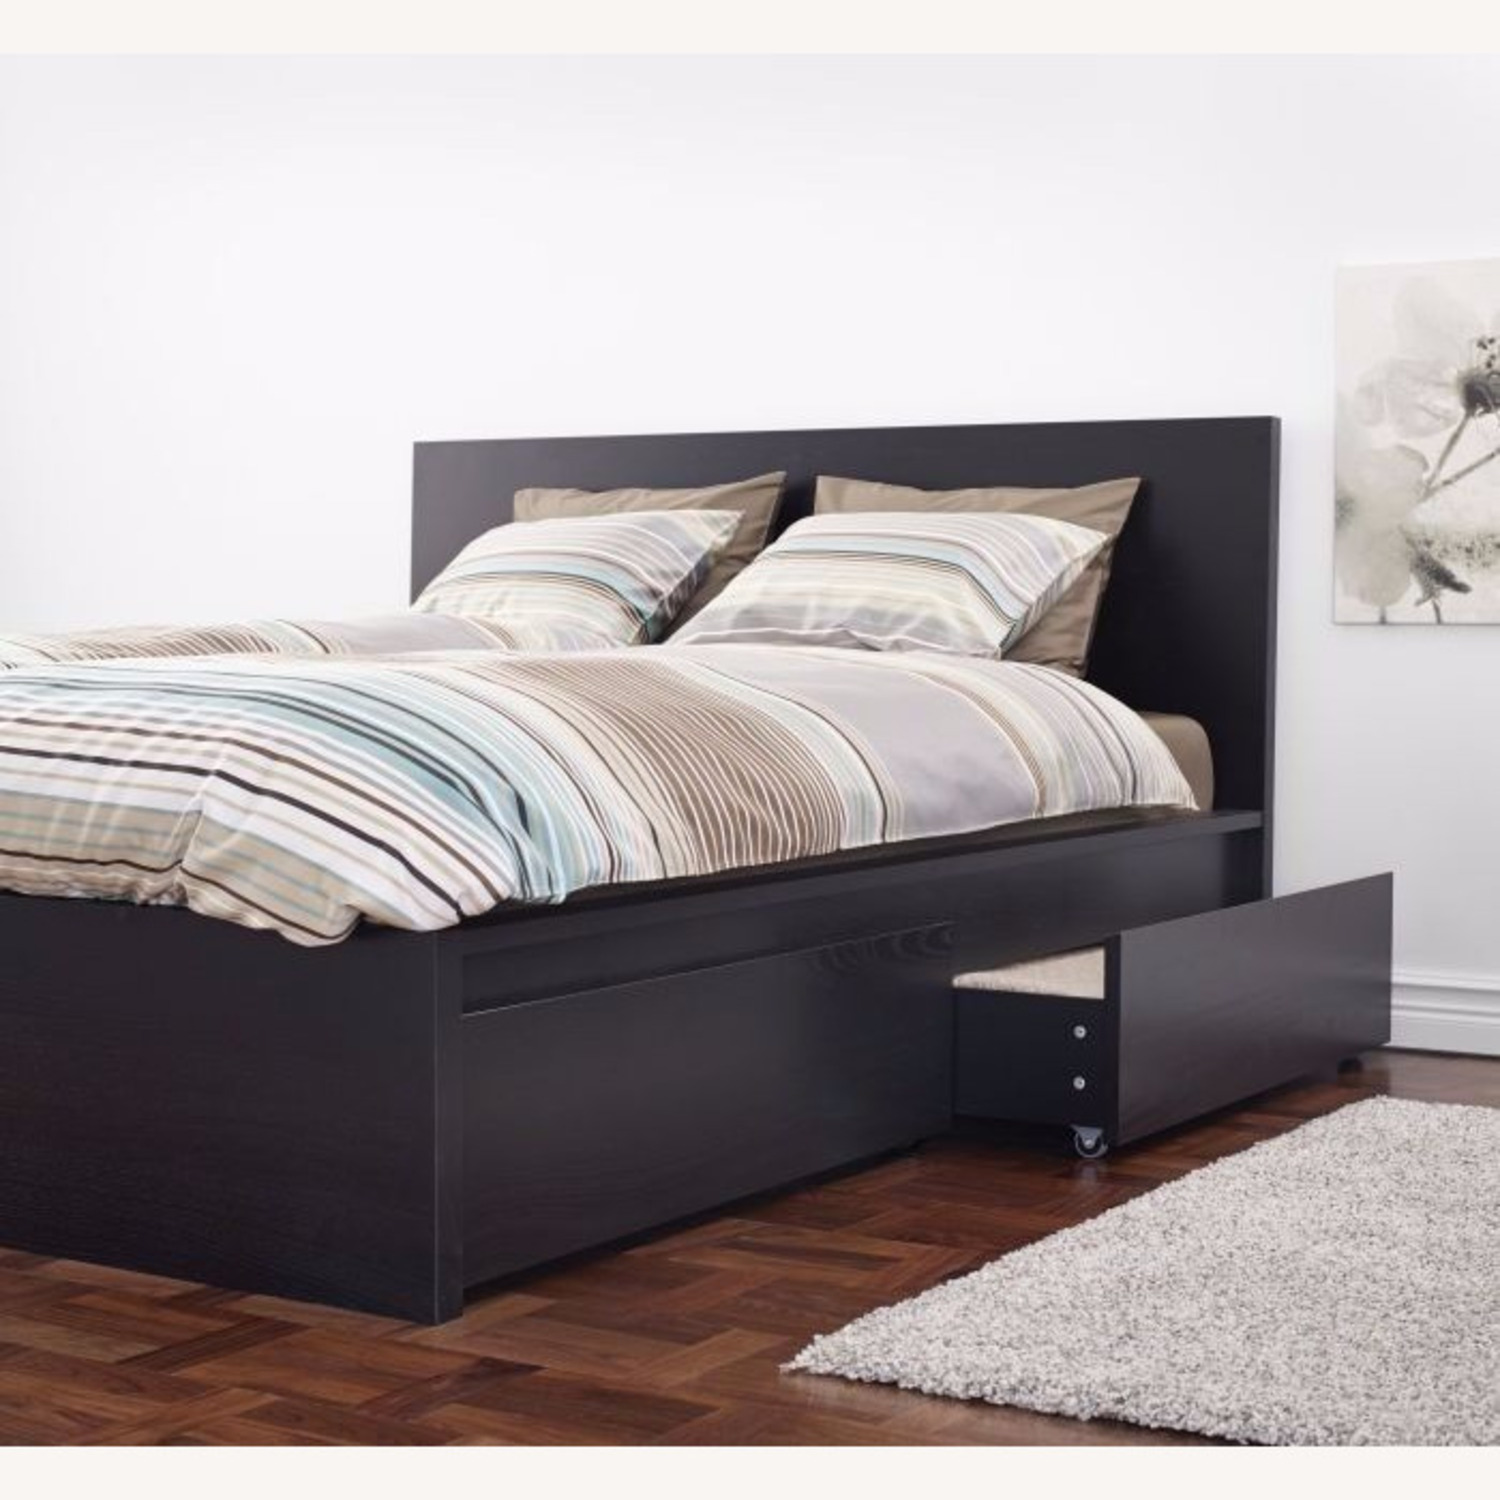 IKEA Malm Queen Bed with Storage - image-0